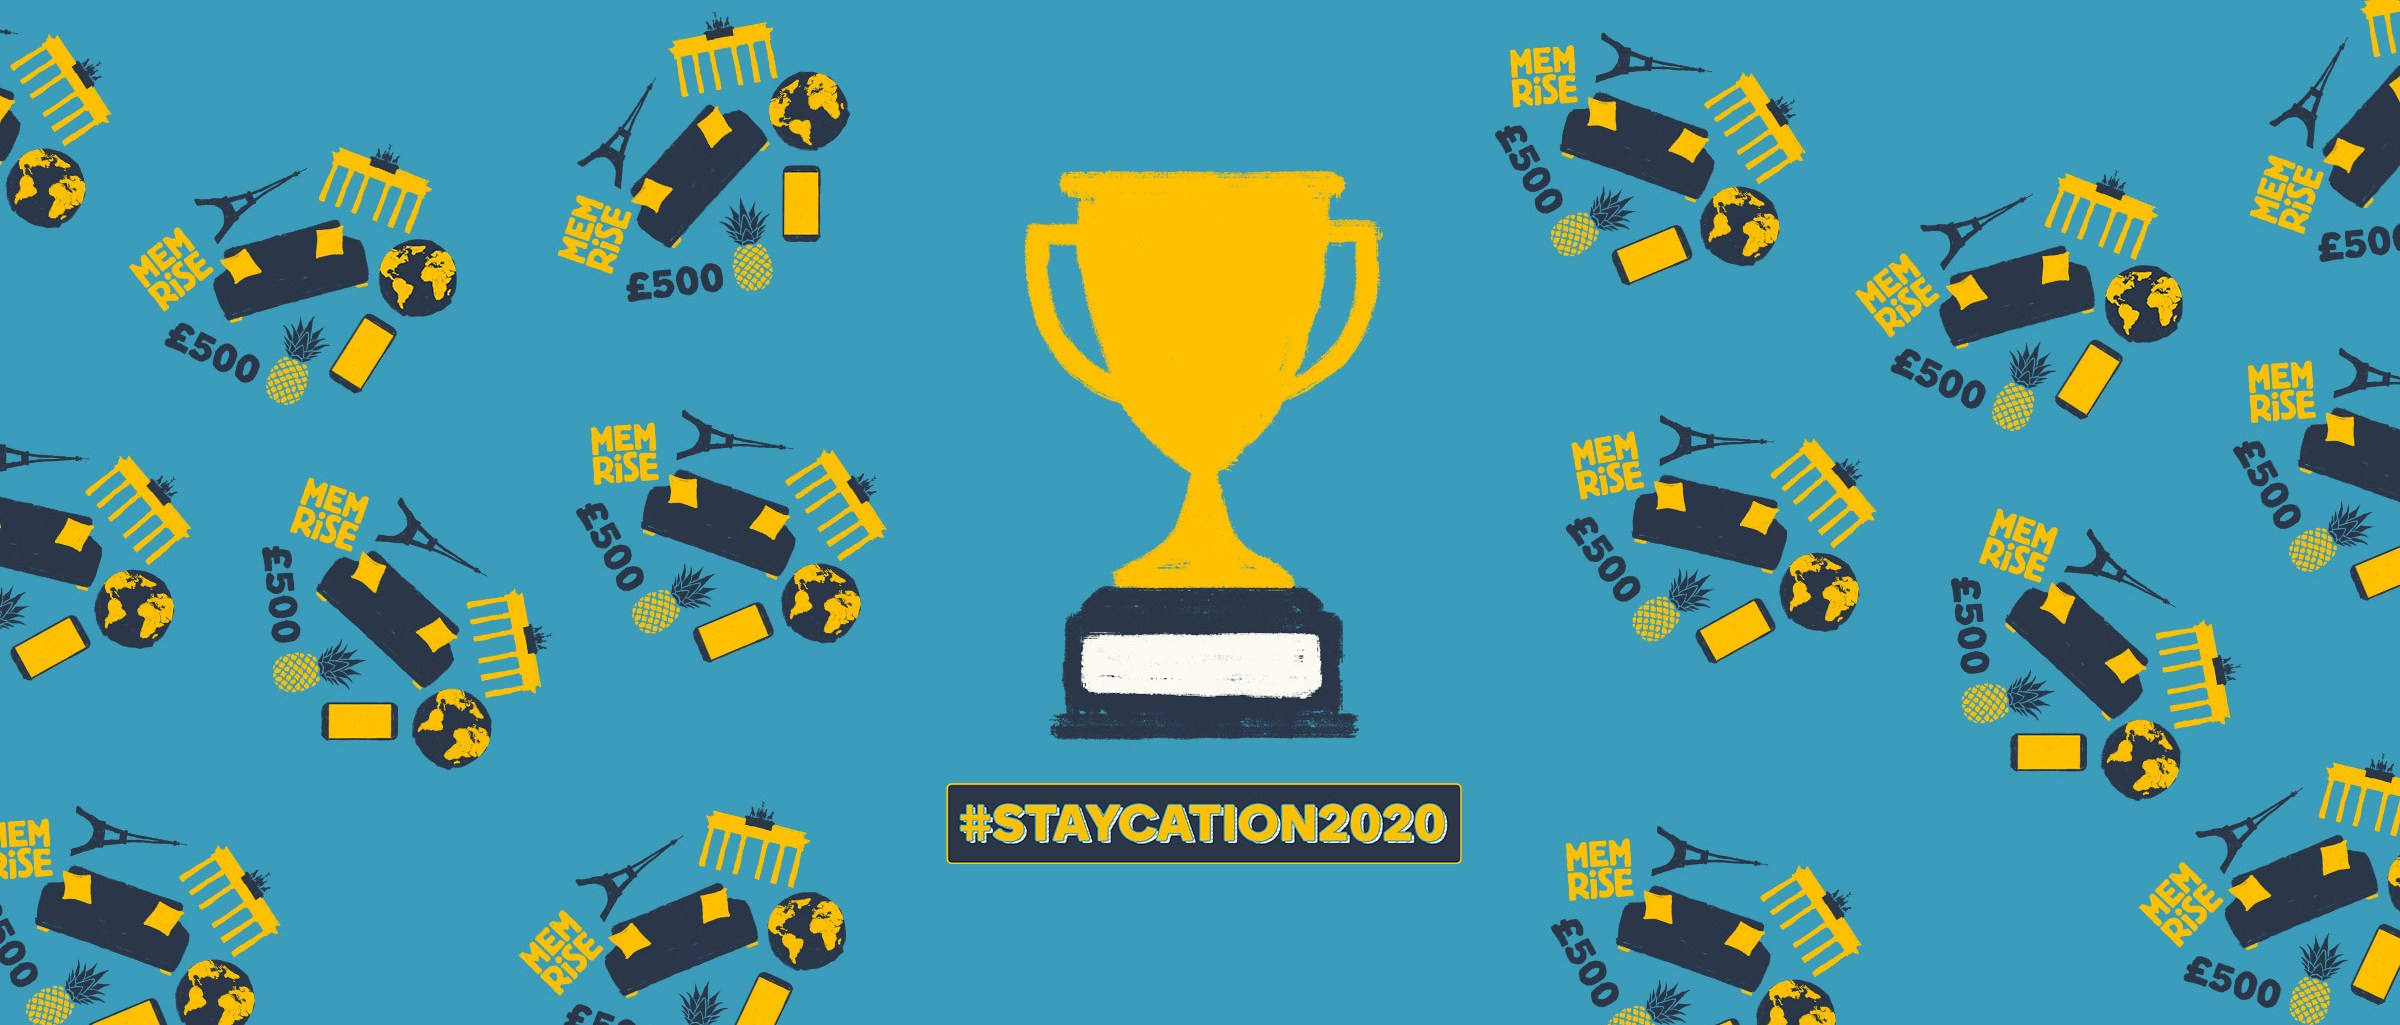 Blog-NL-StayCation-WINNER-150420-v01